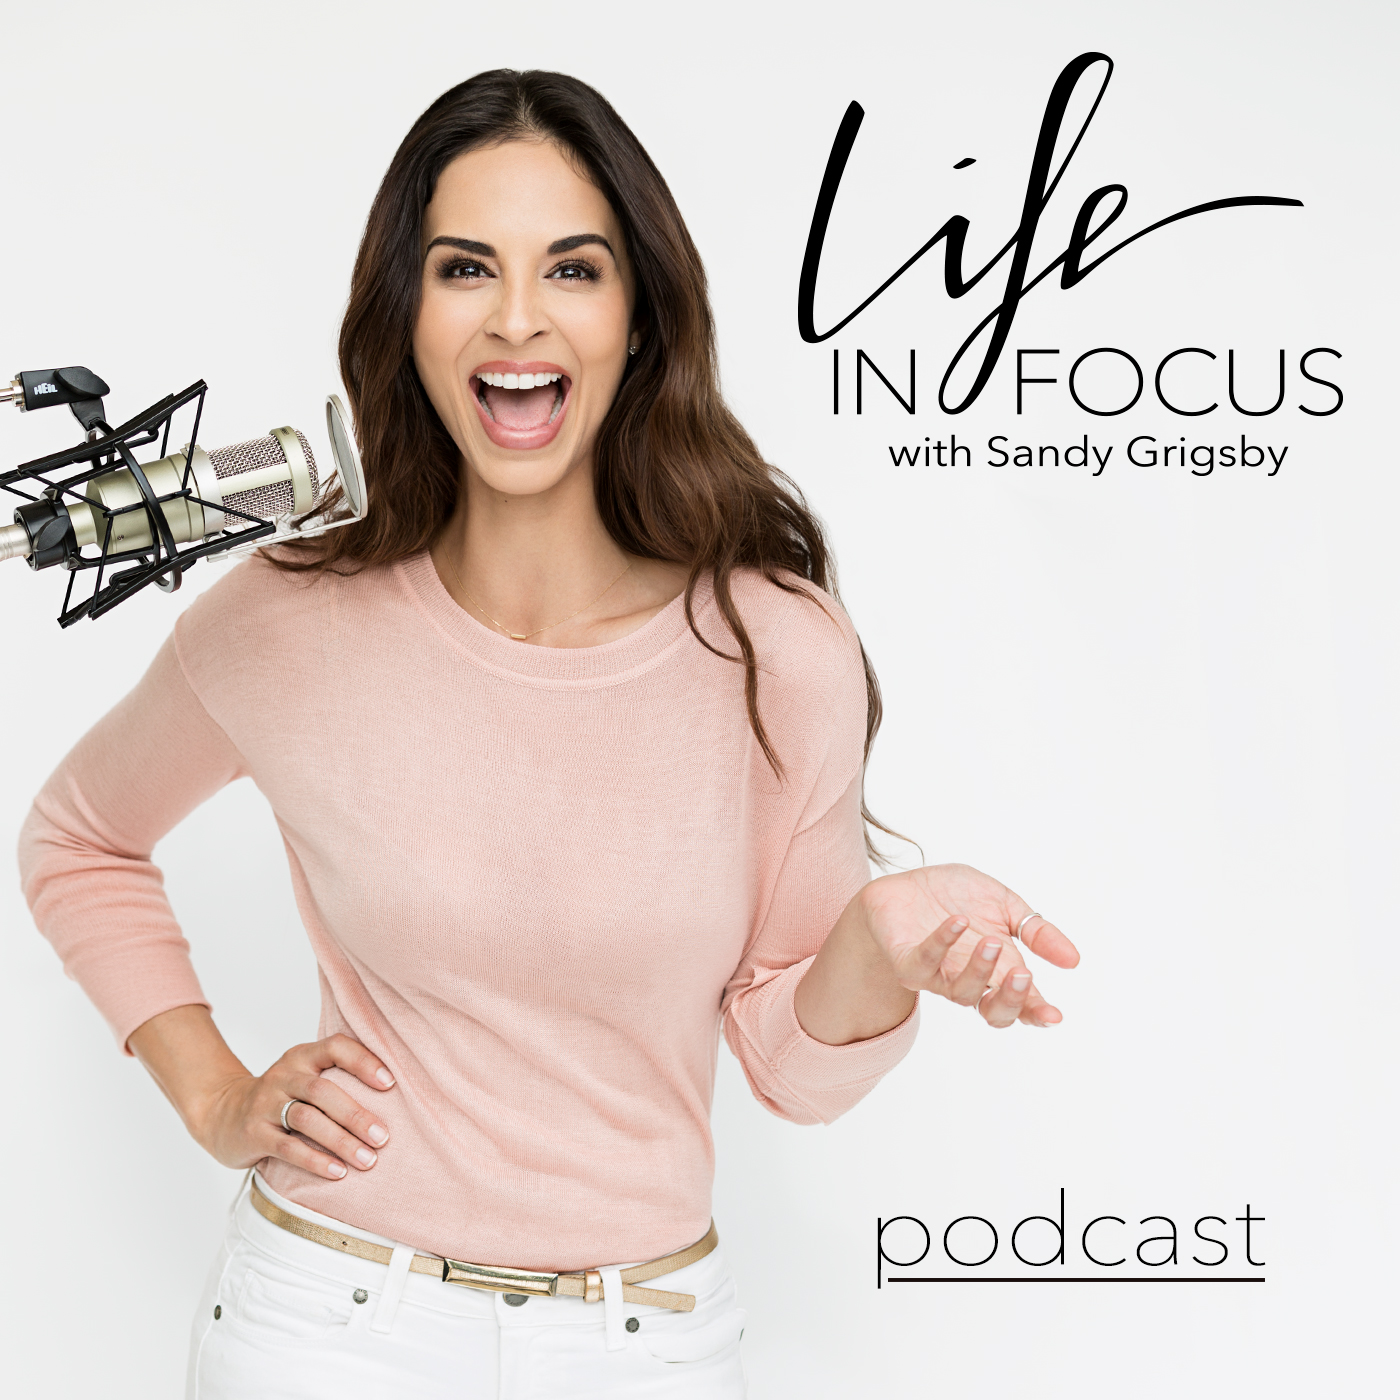 Life in Focus with Sandy Grigsby: Personal Branding, High Performance, Confidence, Self Worth, Entrepreneurship show art